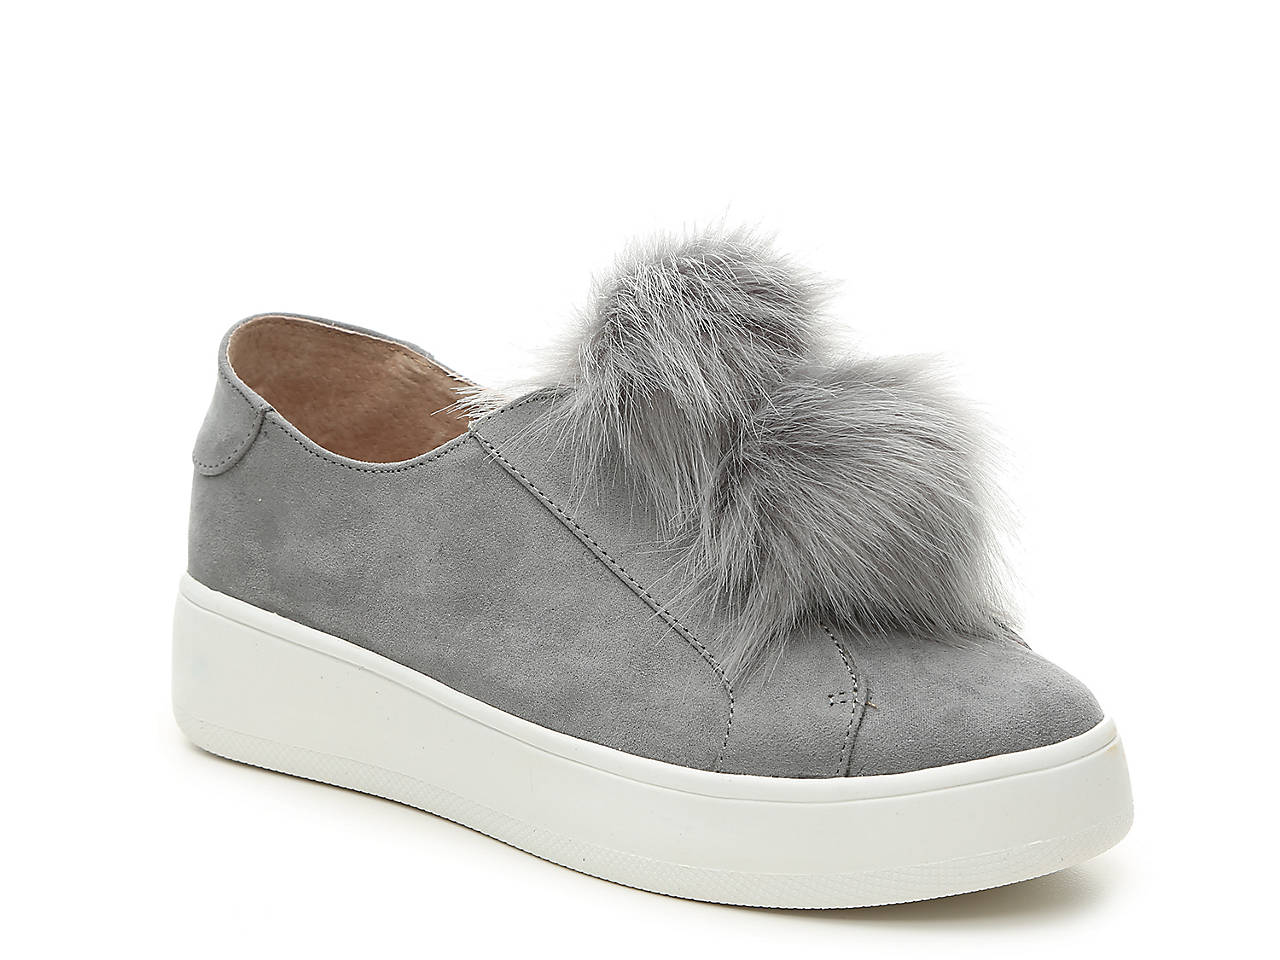 bada1a52ef4 Steve Madden Furlie Wedge Slip-On Sneaker Women s Shoes